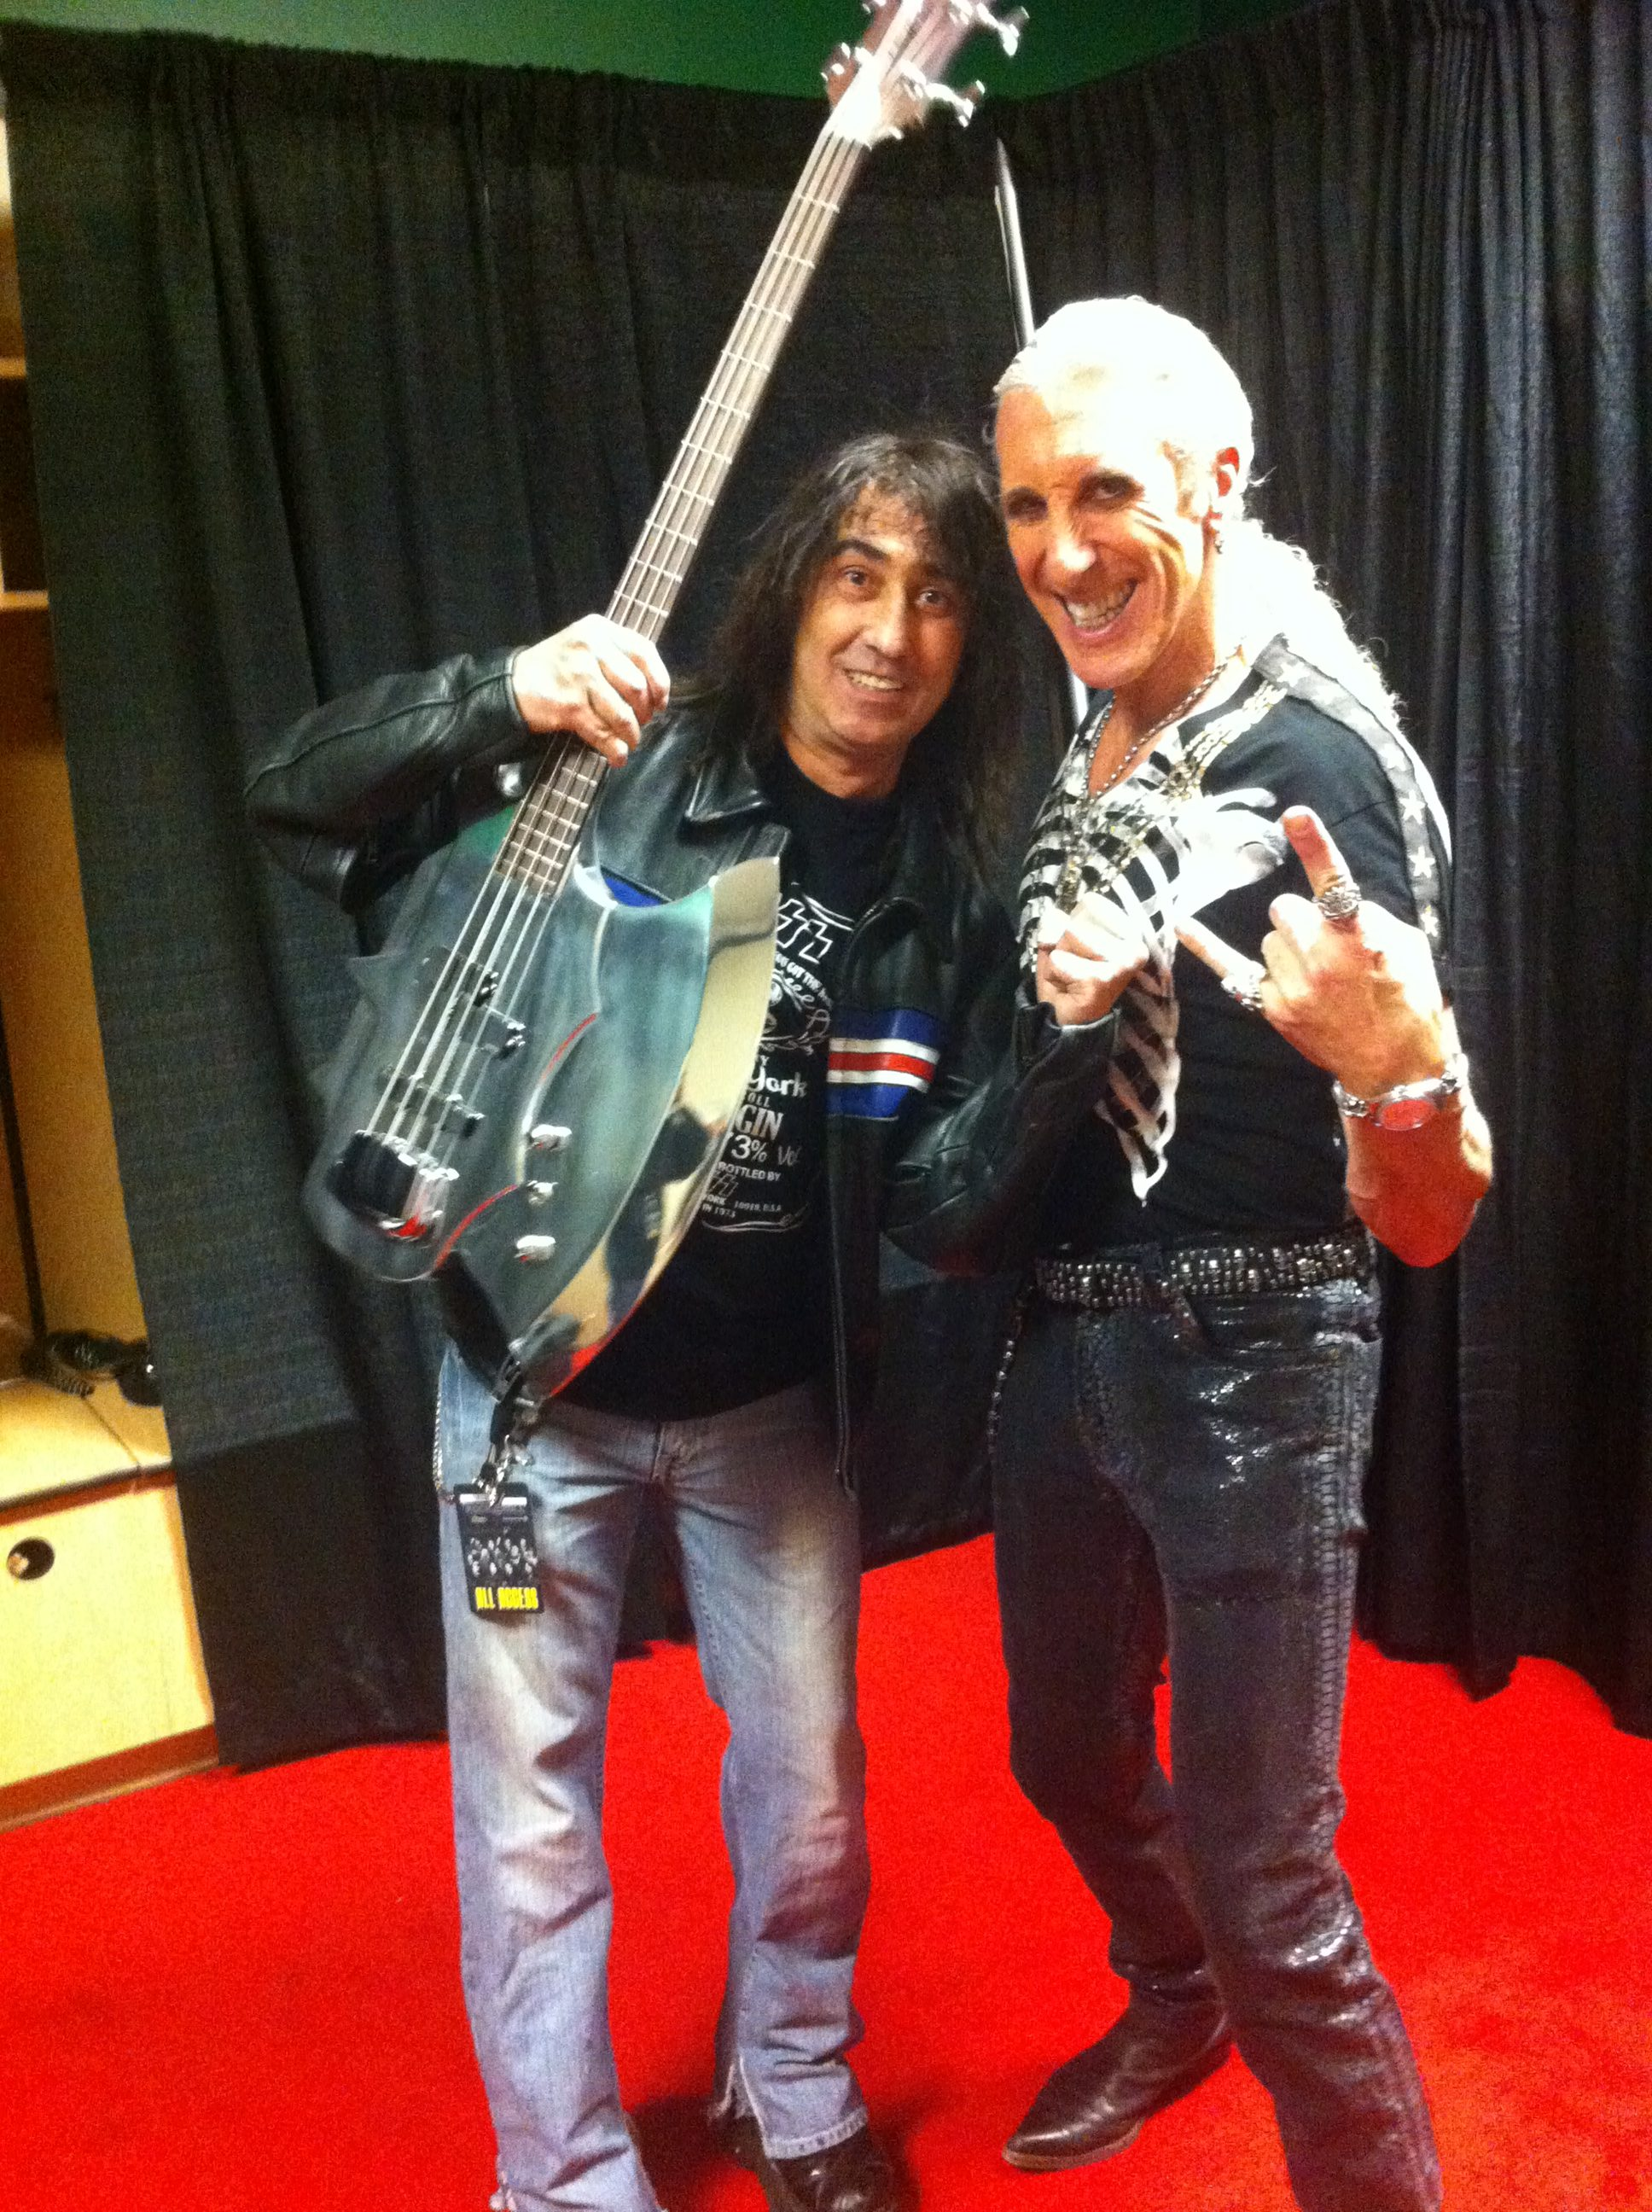 Dee Snider and Jim Cara with a Simmons Axe